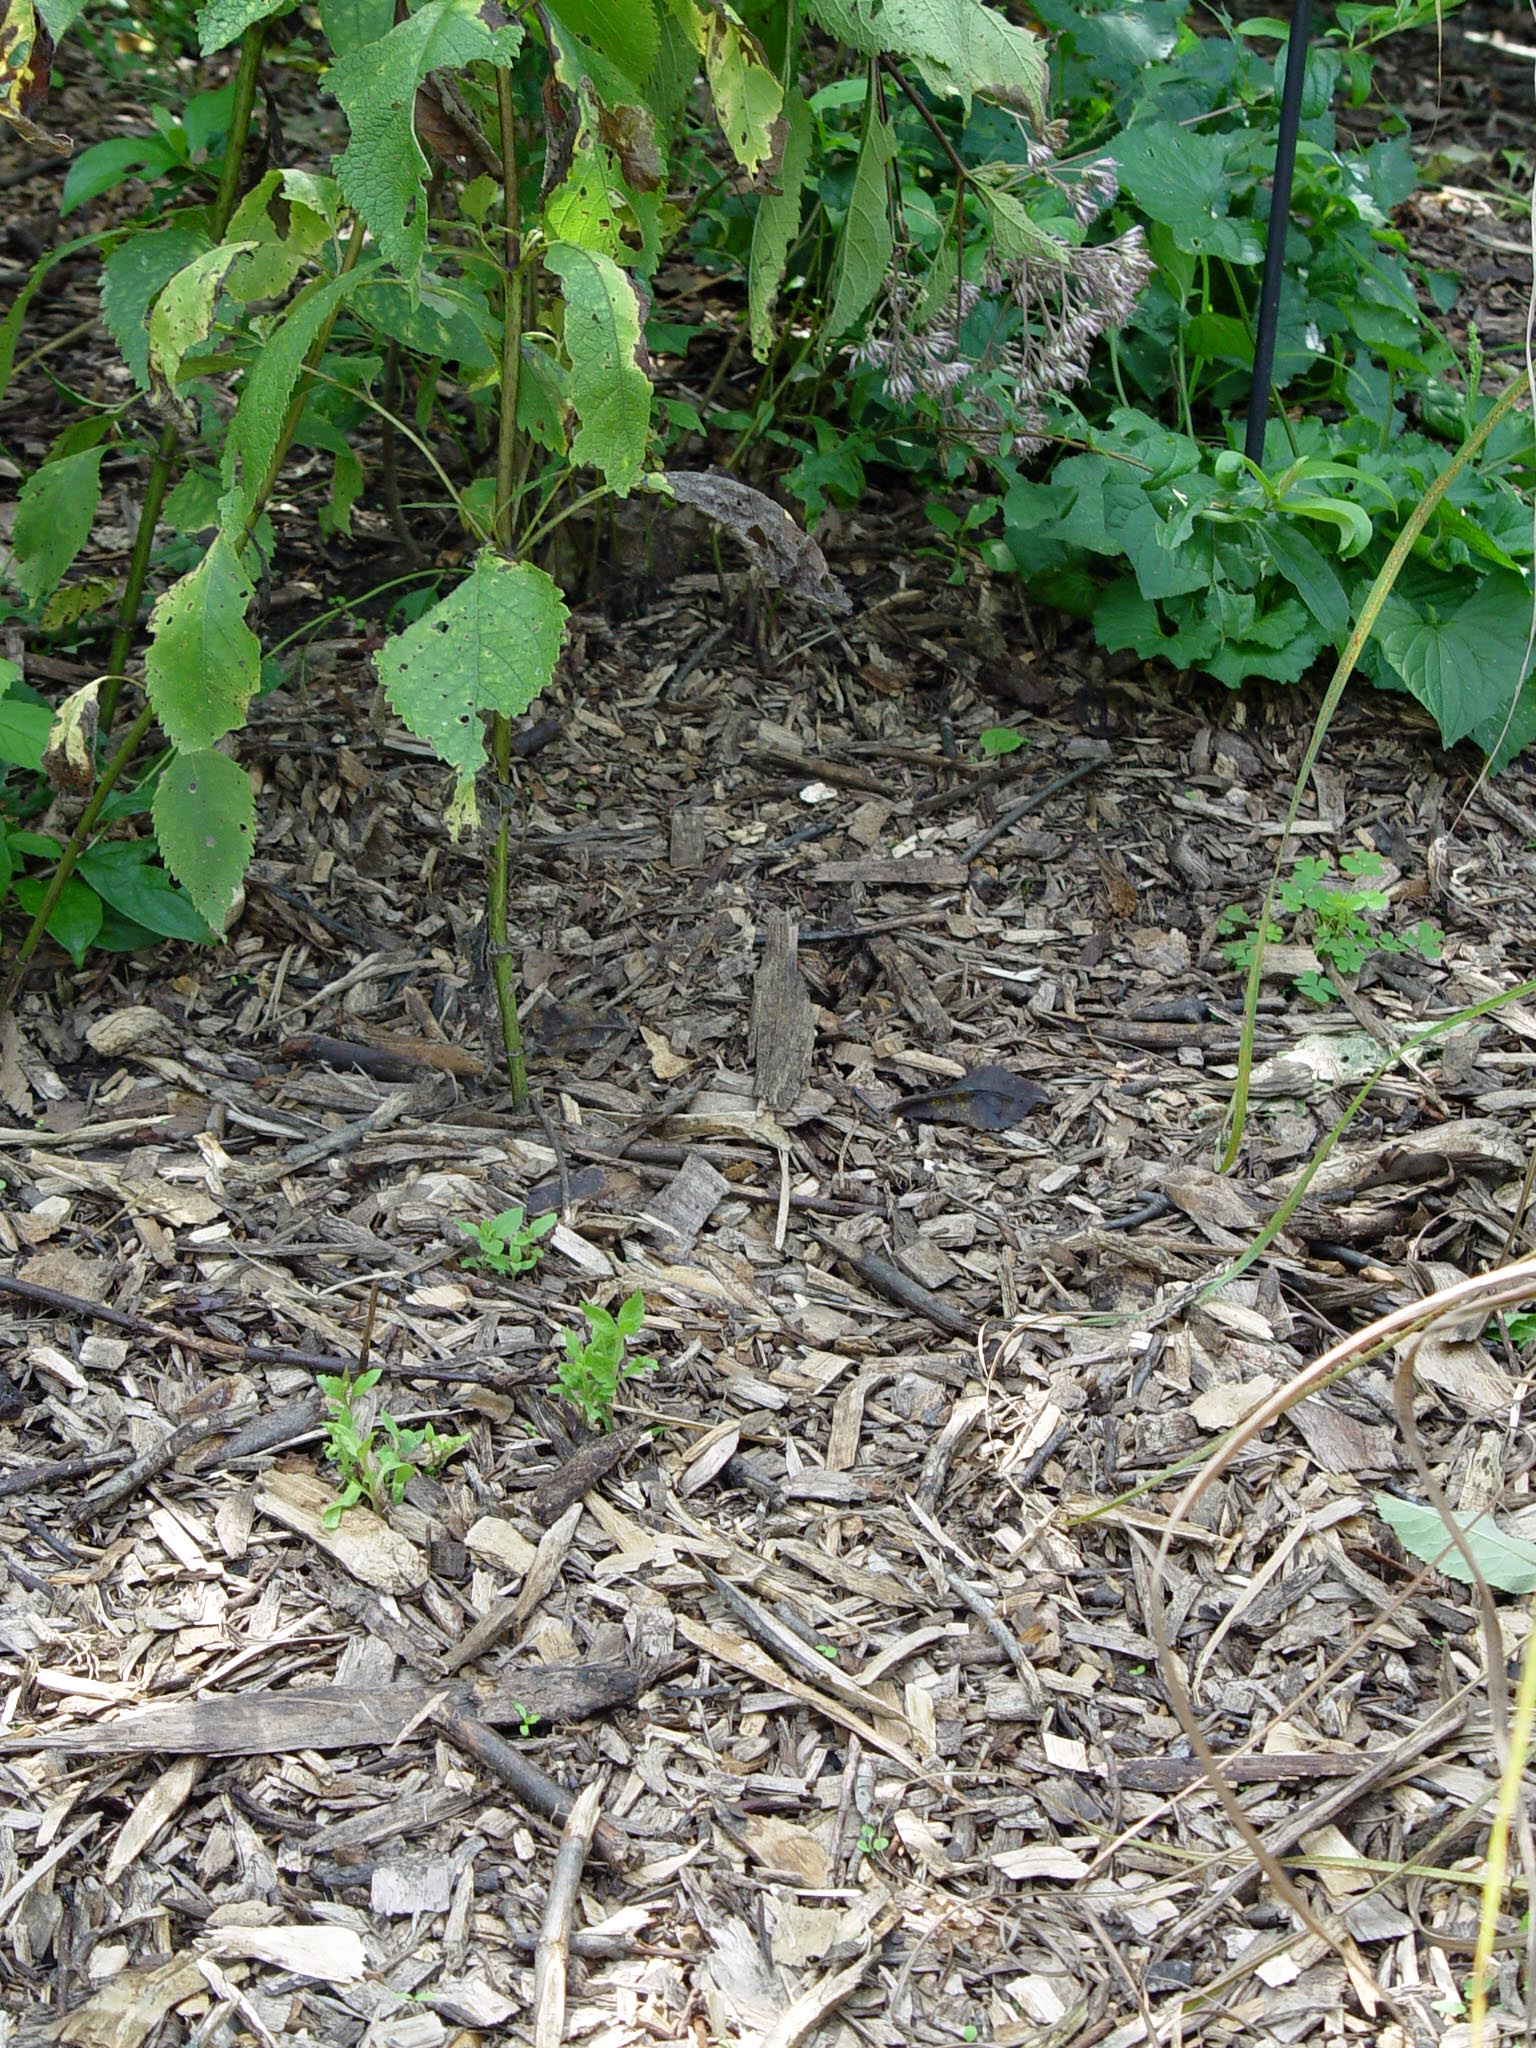 Mulch thought went into this garden housecalls